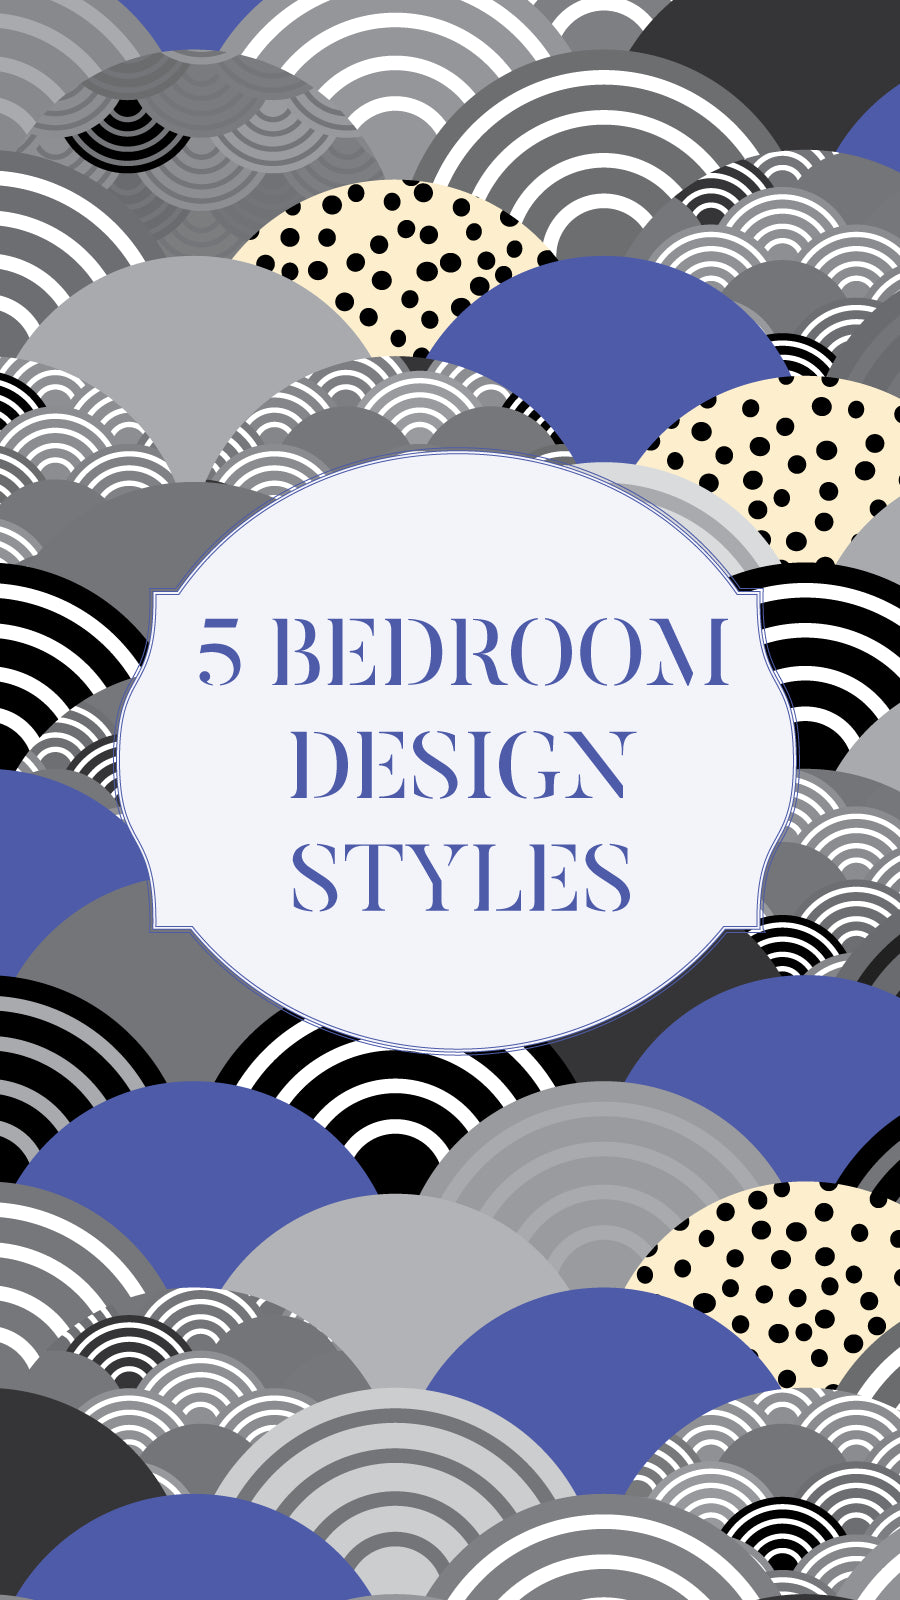 5 BEDROOM DECOR STYLES - TIPS and TRICKS TO HELP DEFINE YOUR BEDROOM DESIGN